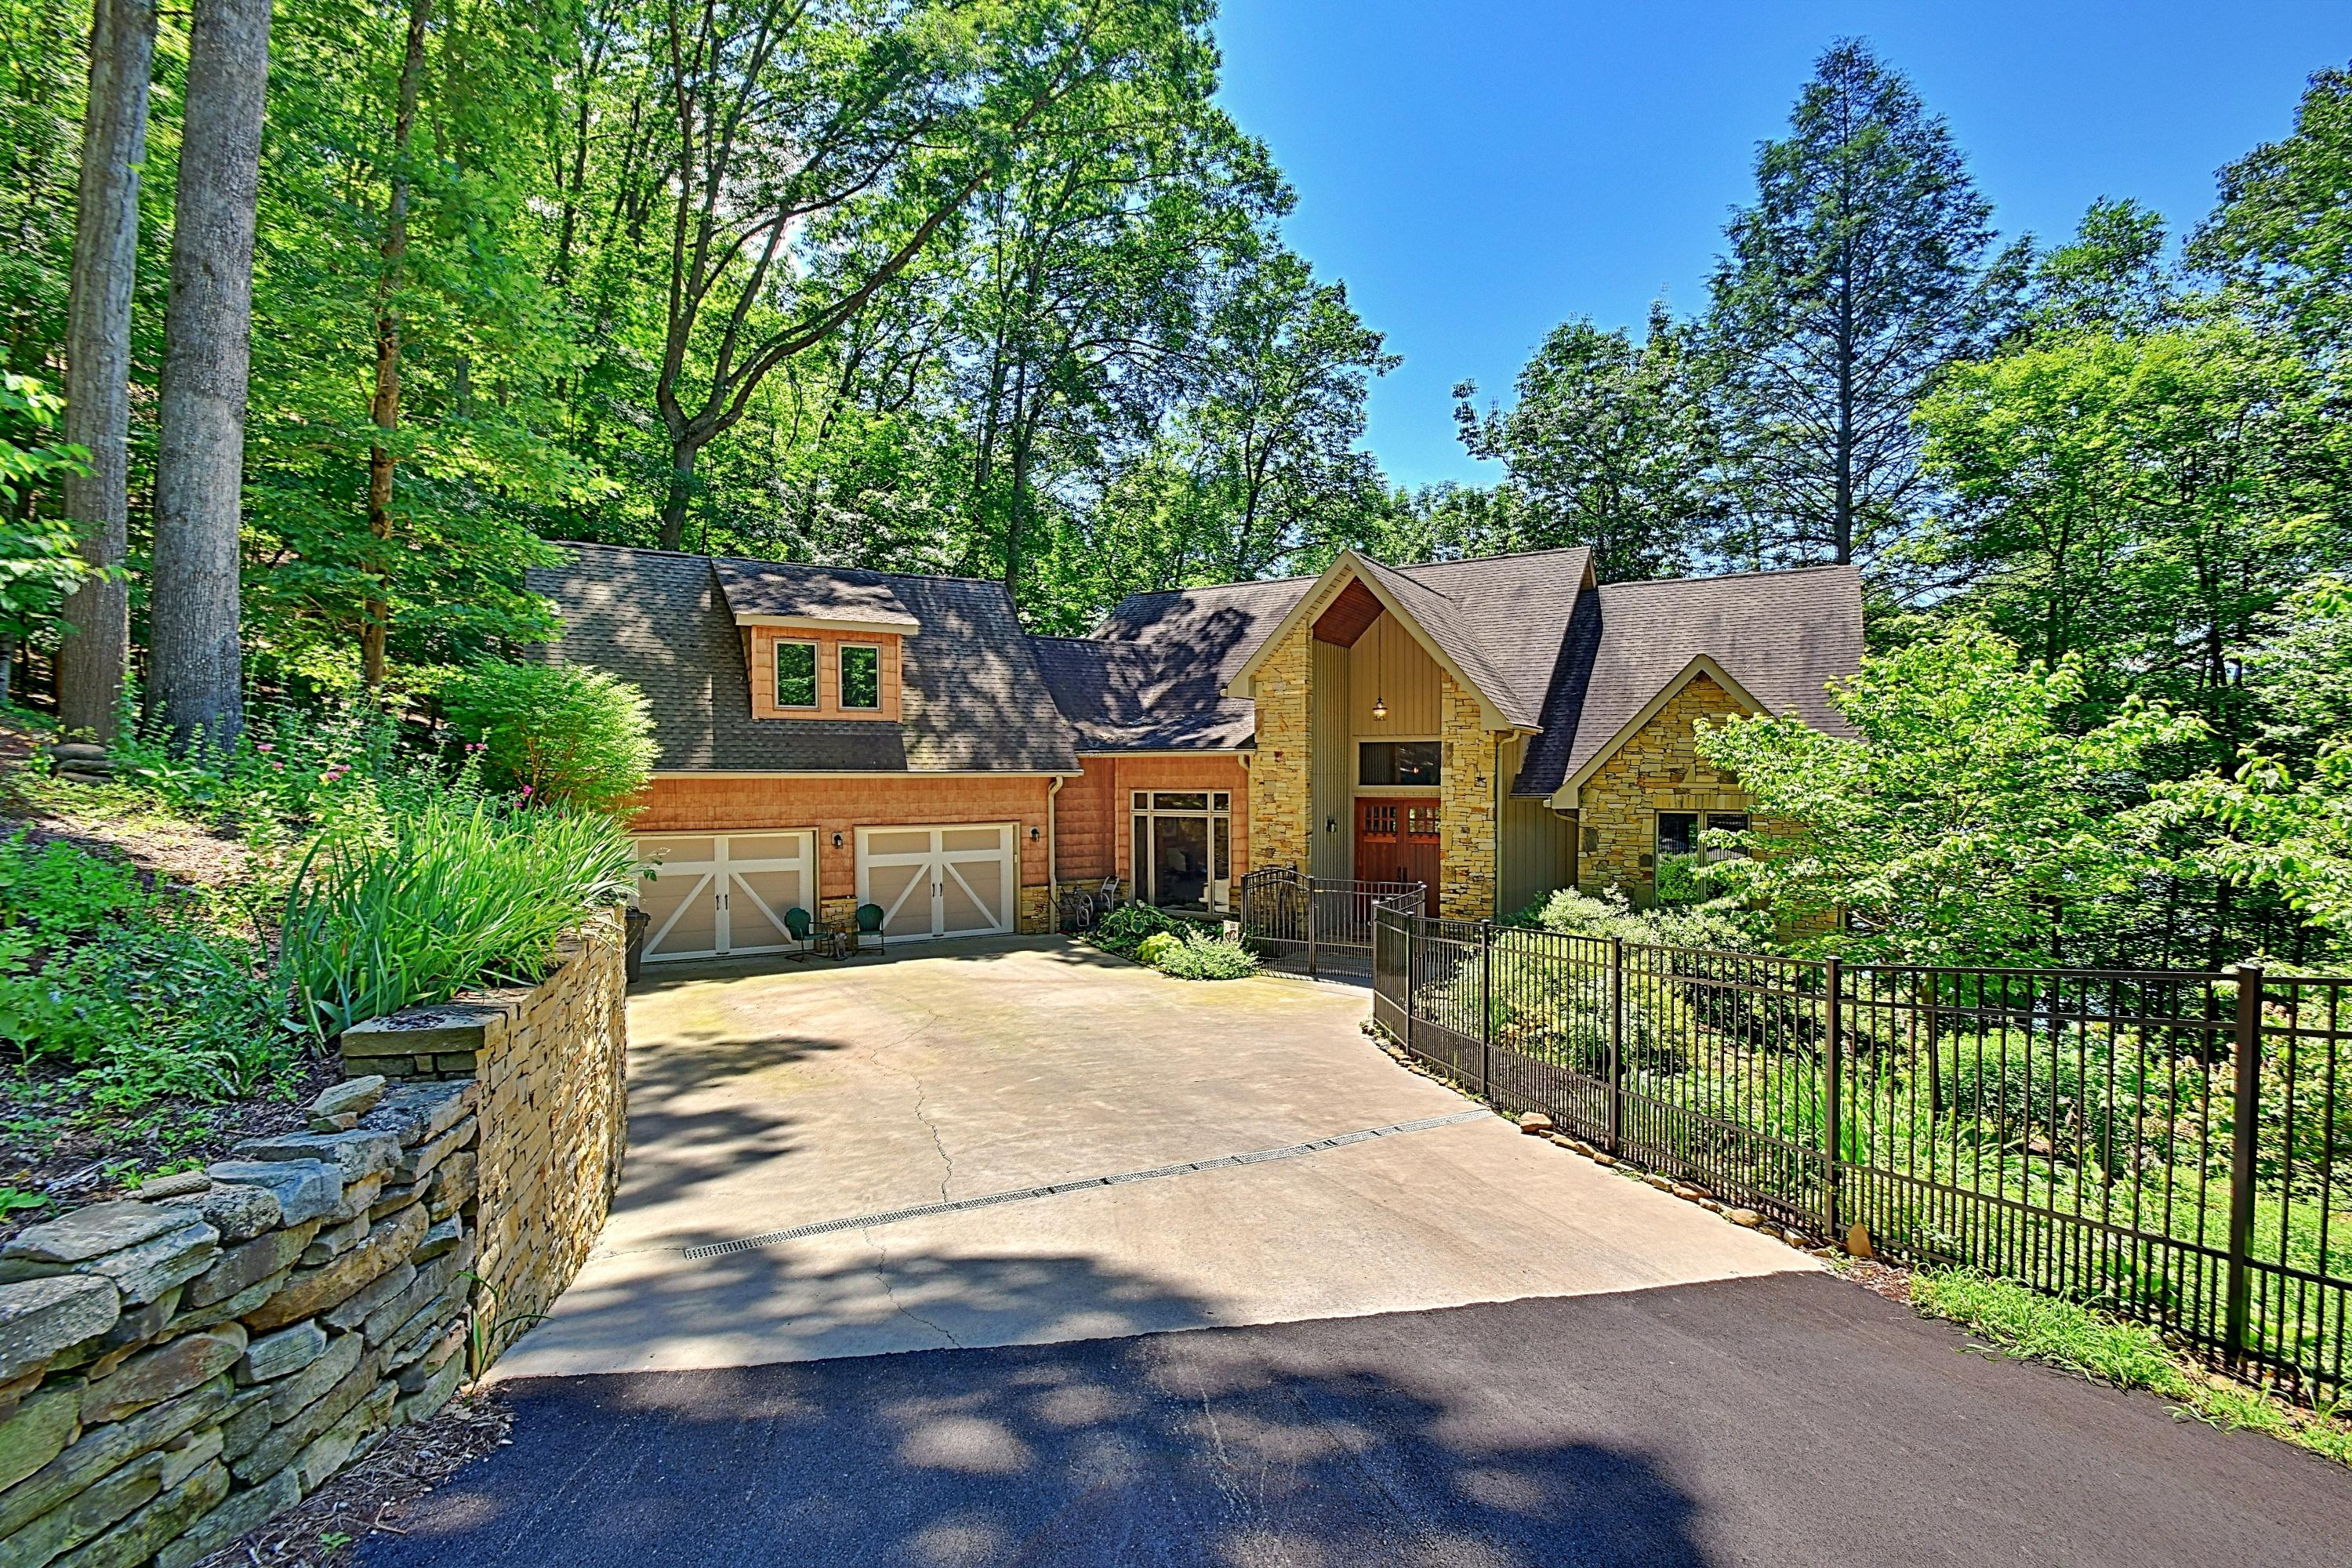 497 Foxridge Lane: